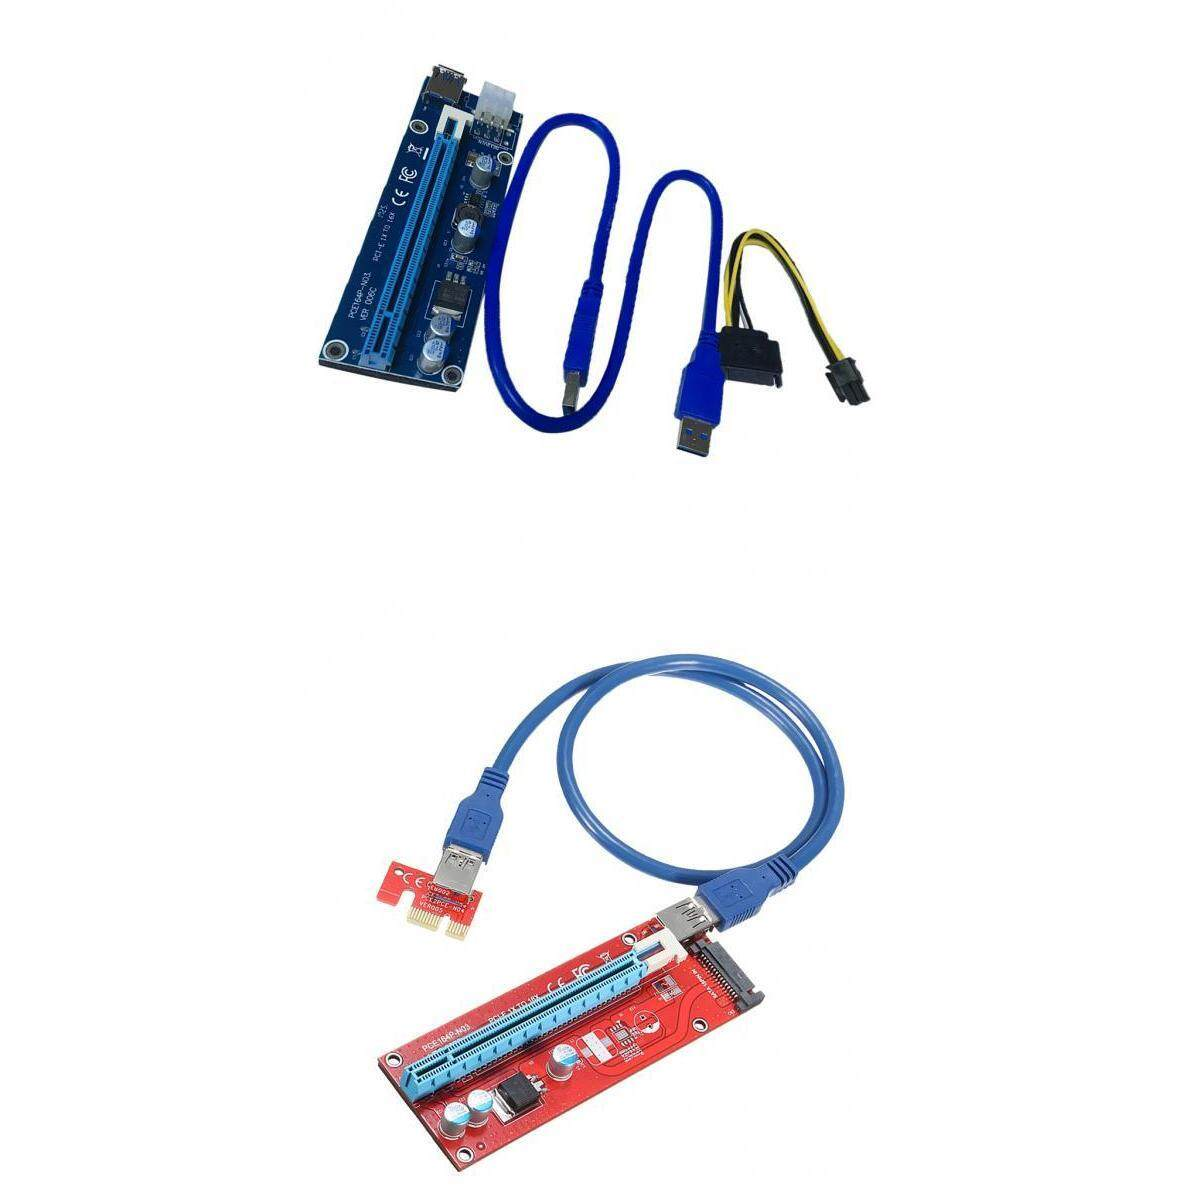 Magideal Pci-Express Card 1x To 16x 3.0extension Cable 4pin 15pin Bitcoin Mining By Magideal.